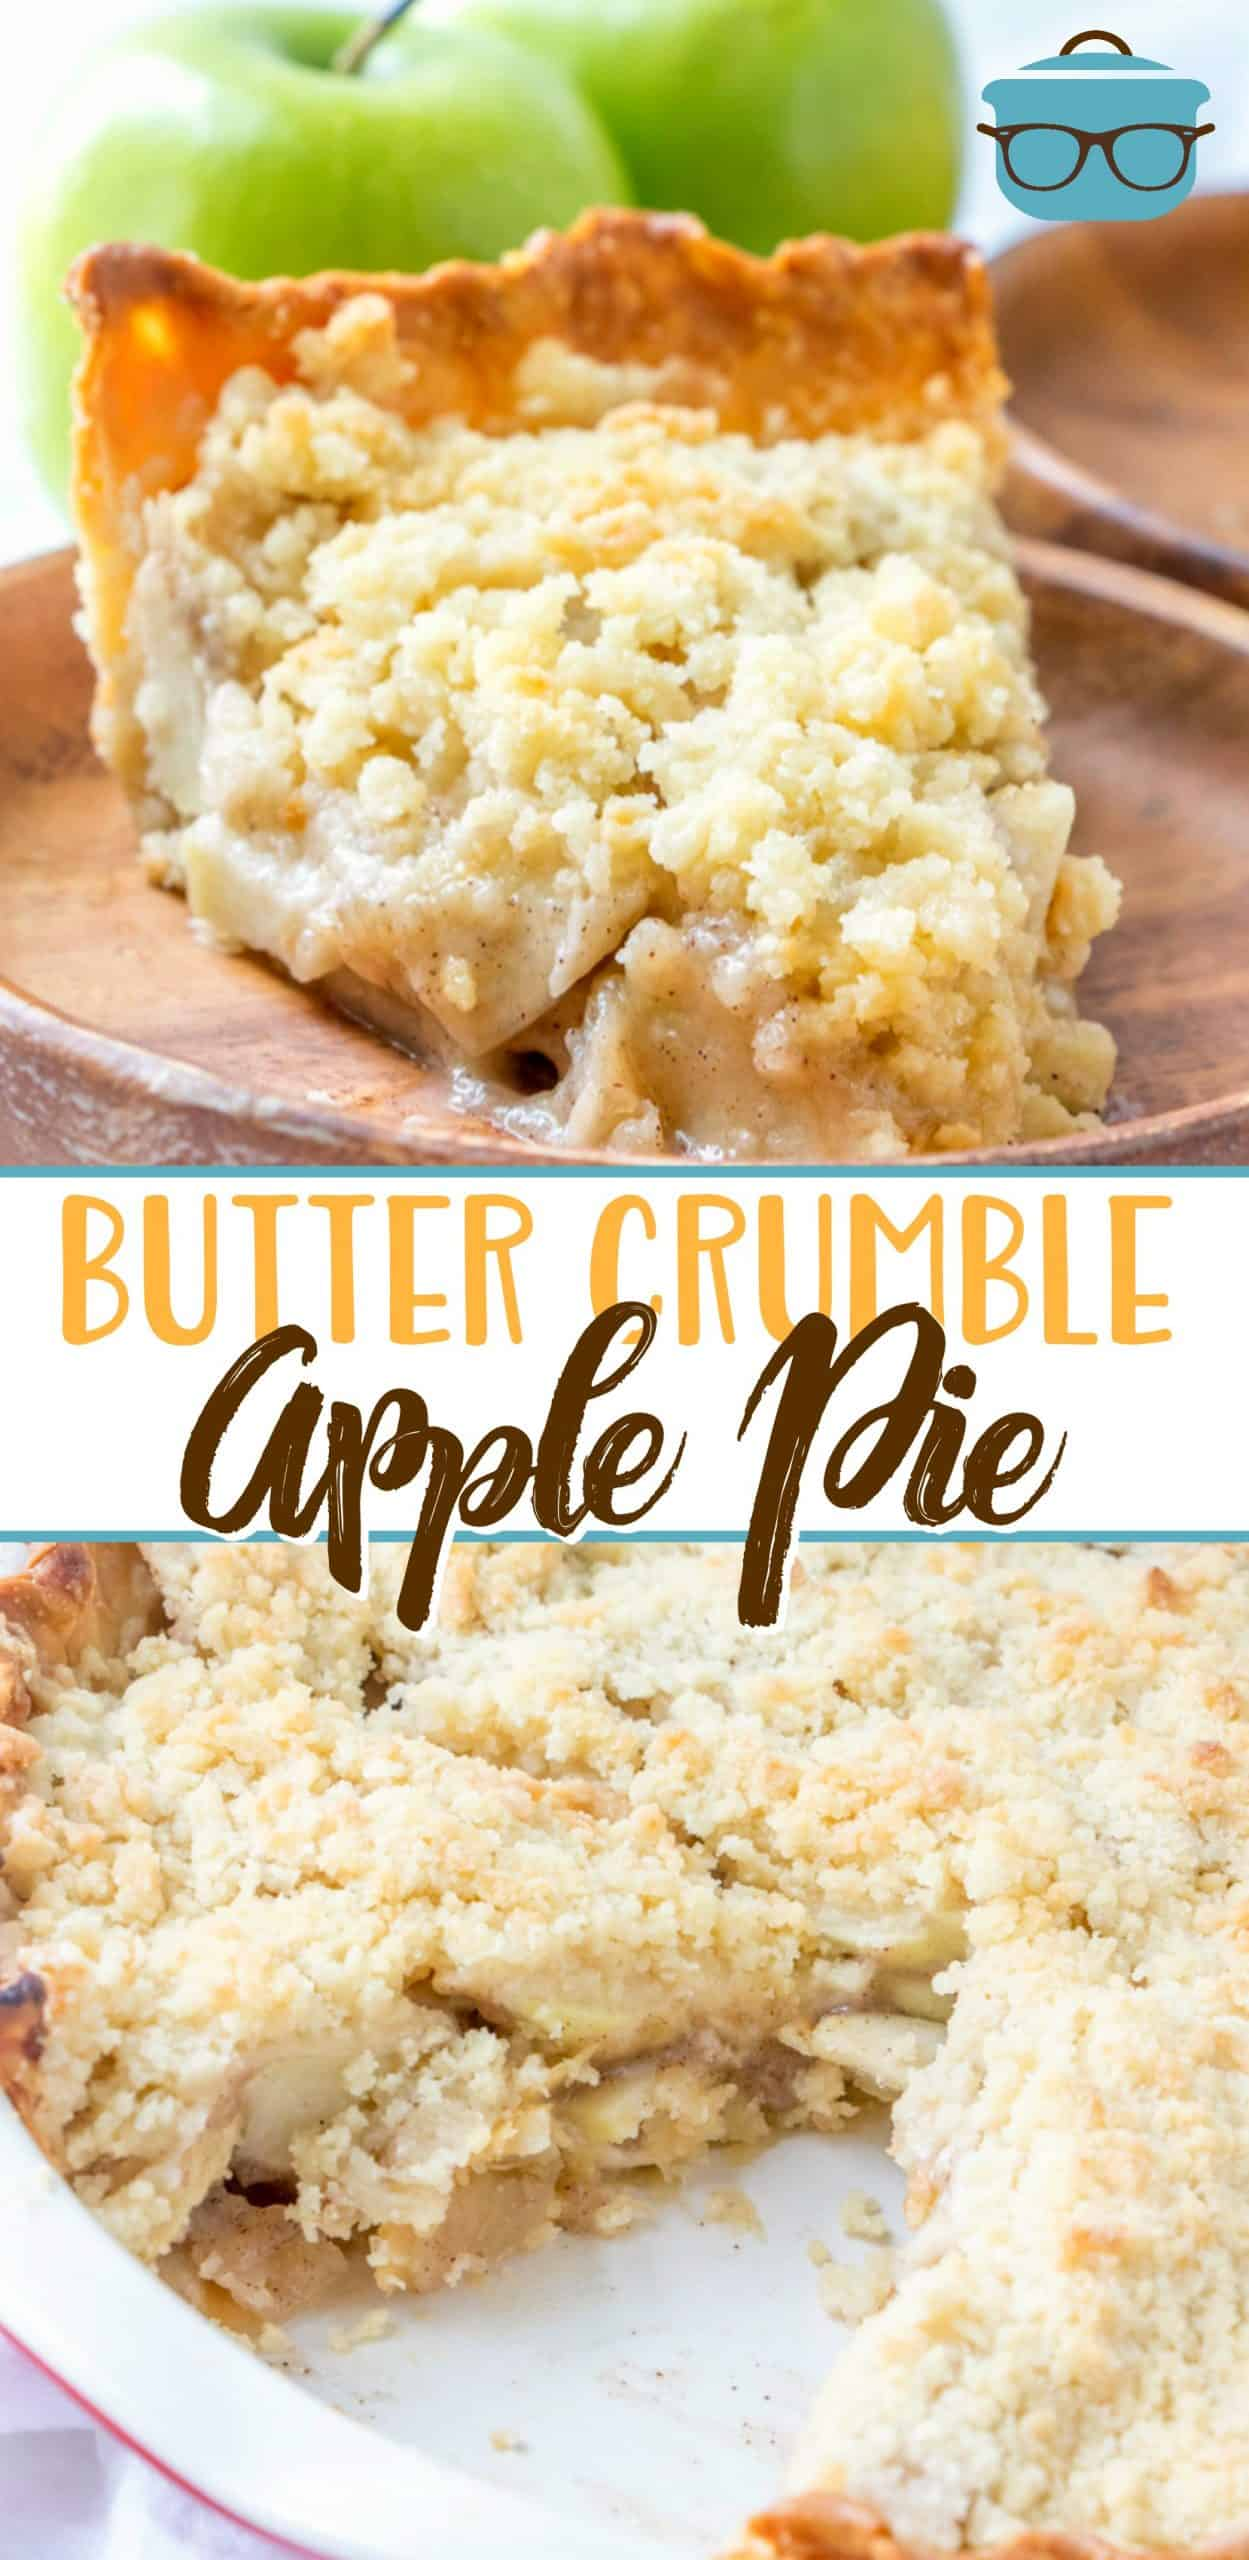 Butter Crumble Apple Pie is hands-down the best apple pie recipe there is. An easy, flaky crust, amazing filling and butter crumble topping!